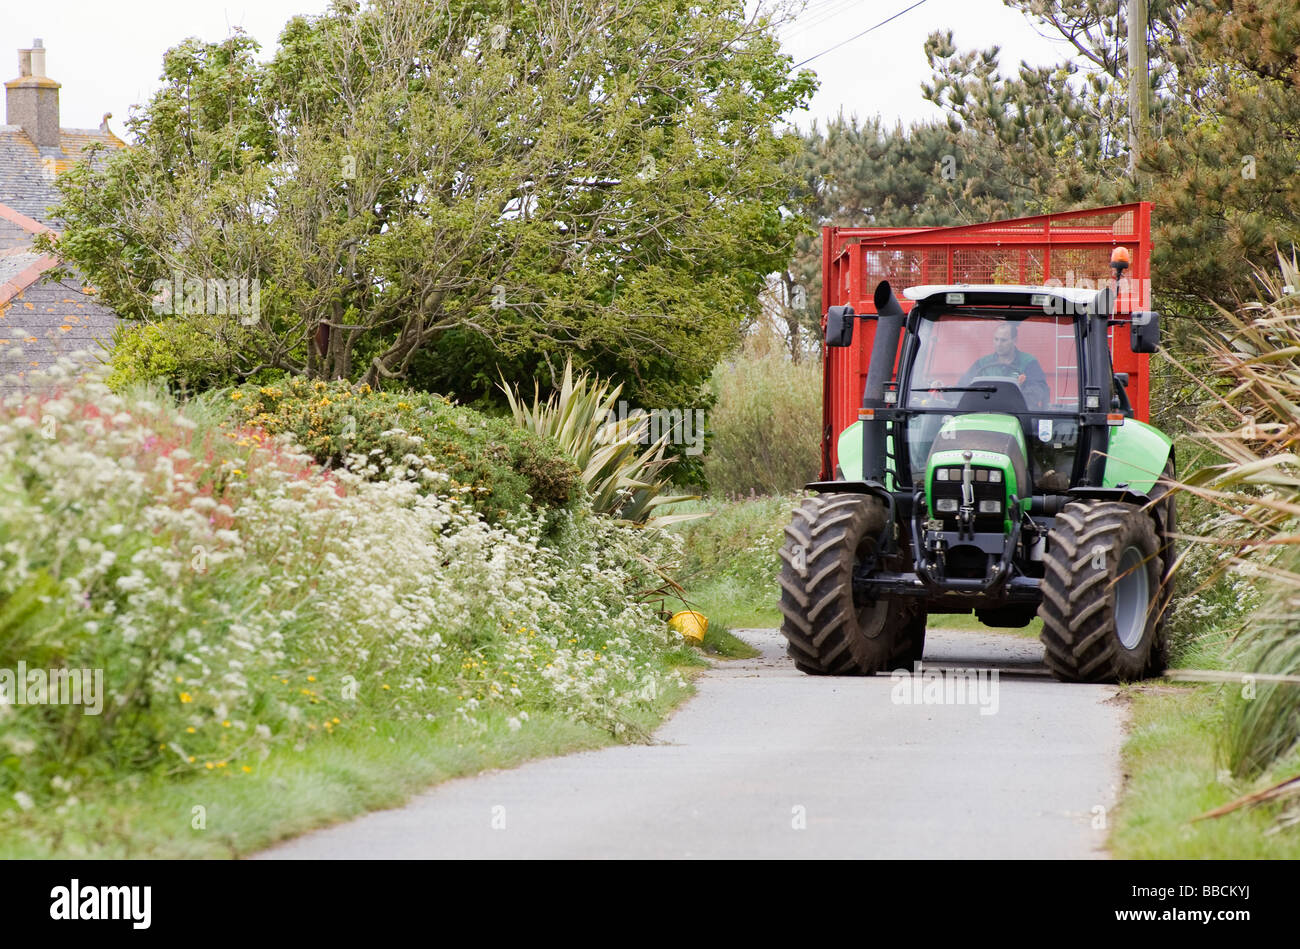 Large green tractor and red cart on a small Cornish lane - Stock Image